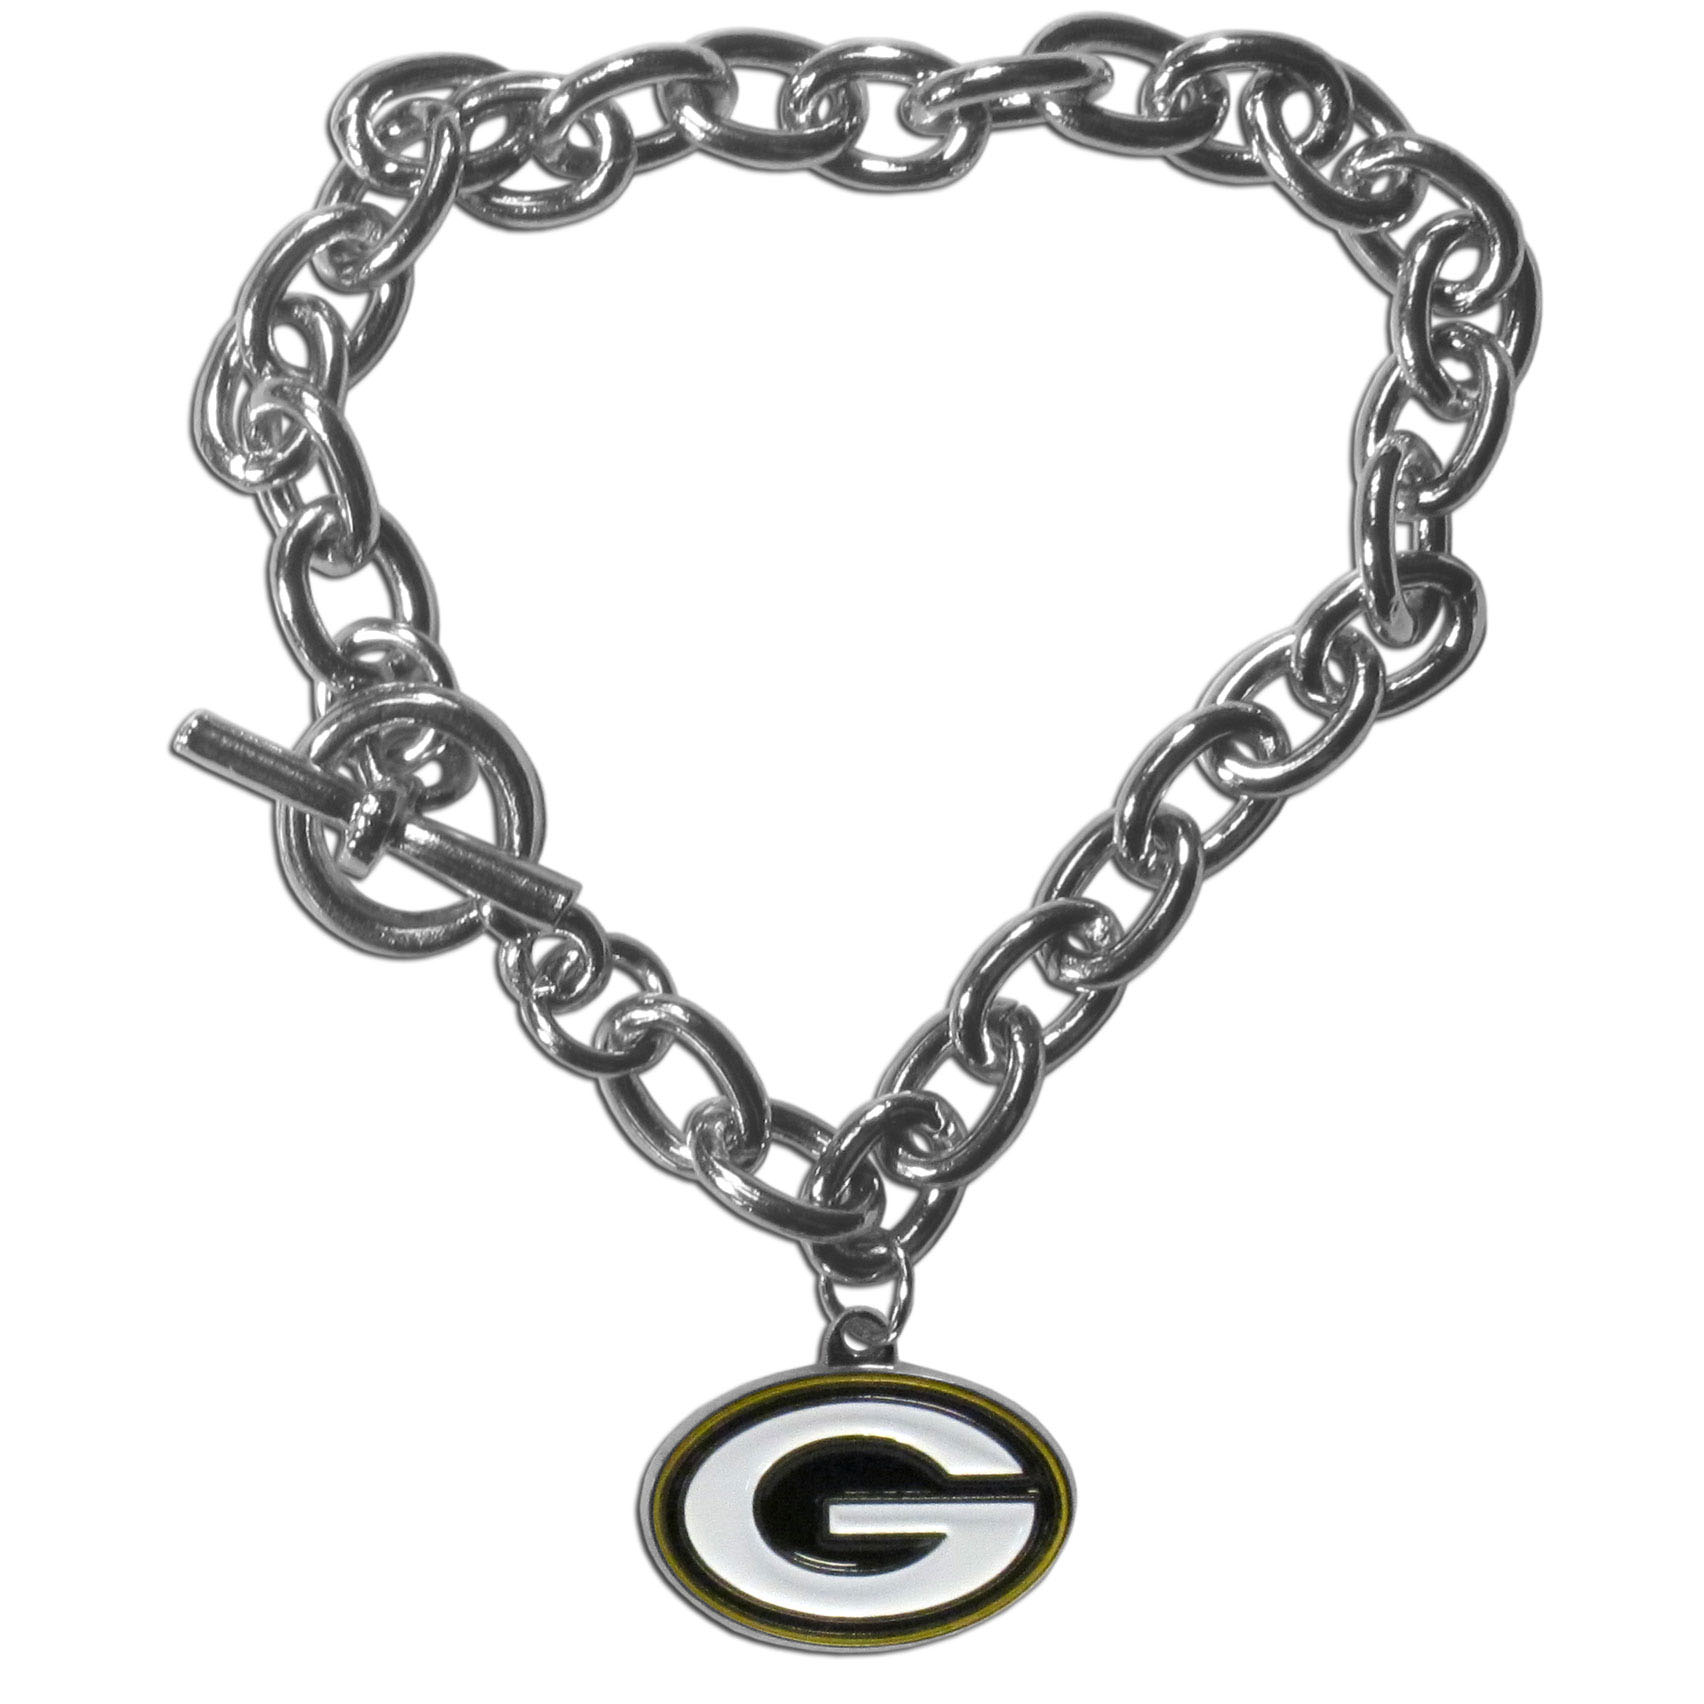 Green Bay Packers Charm Chain Bracelet